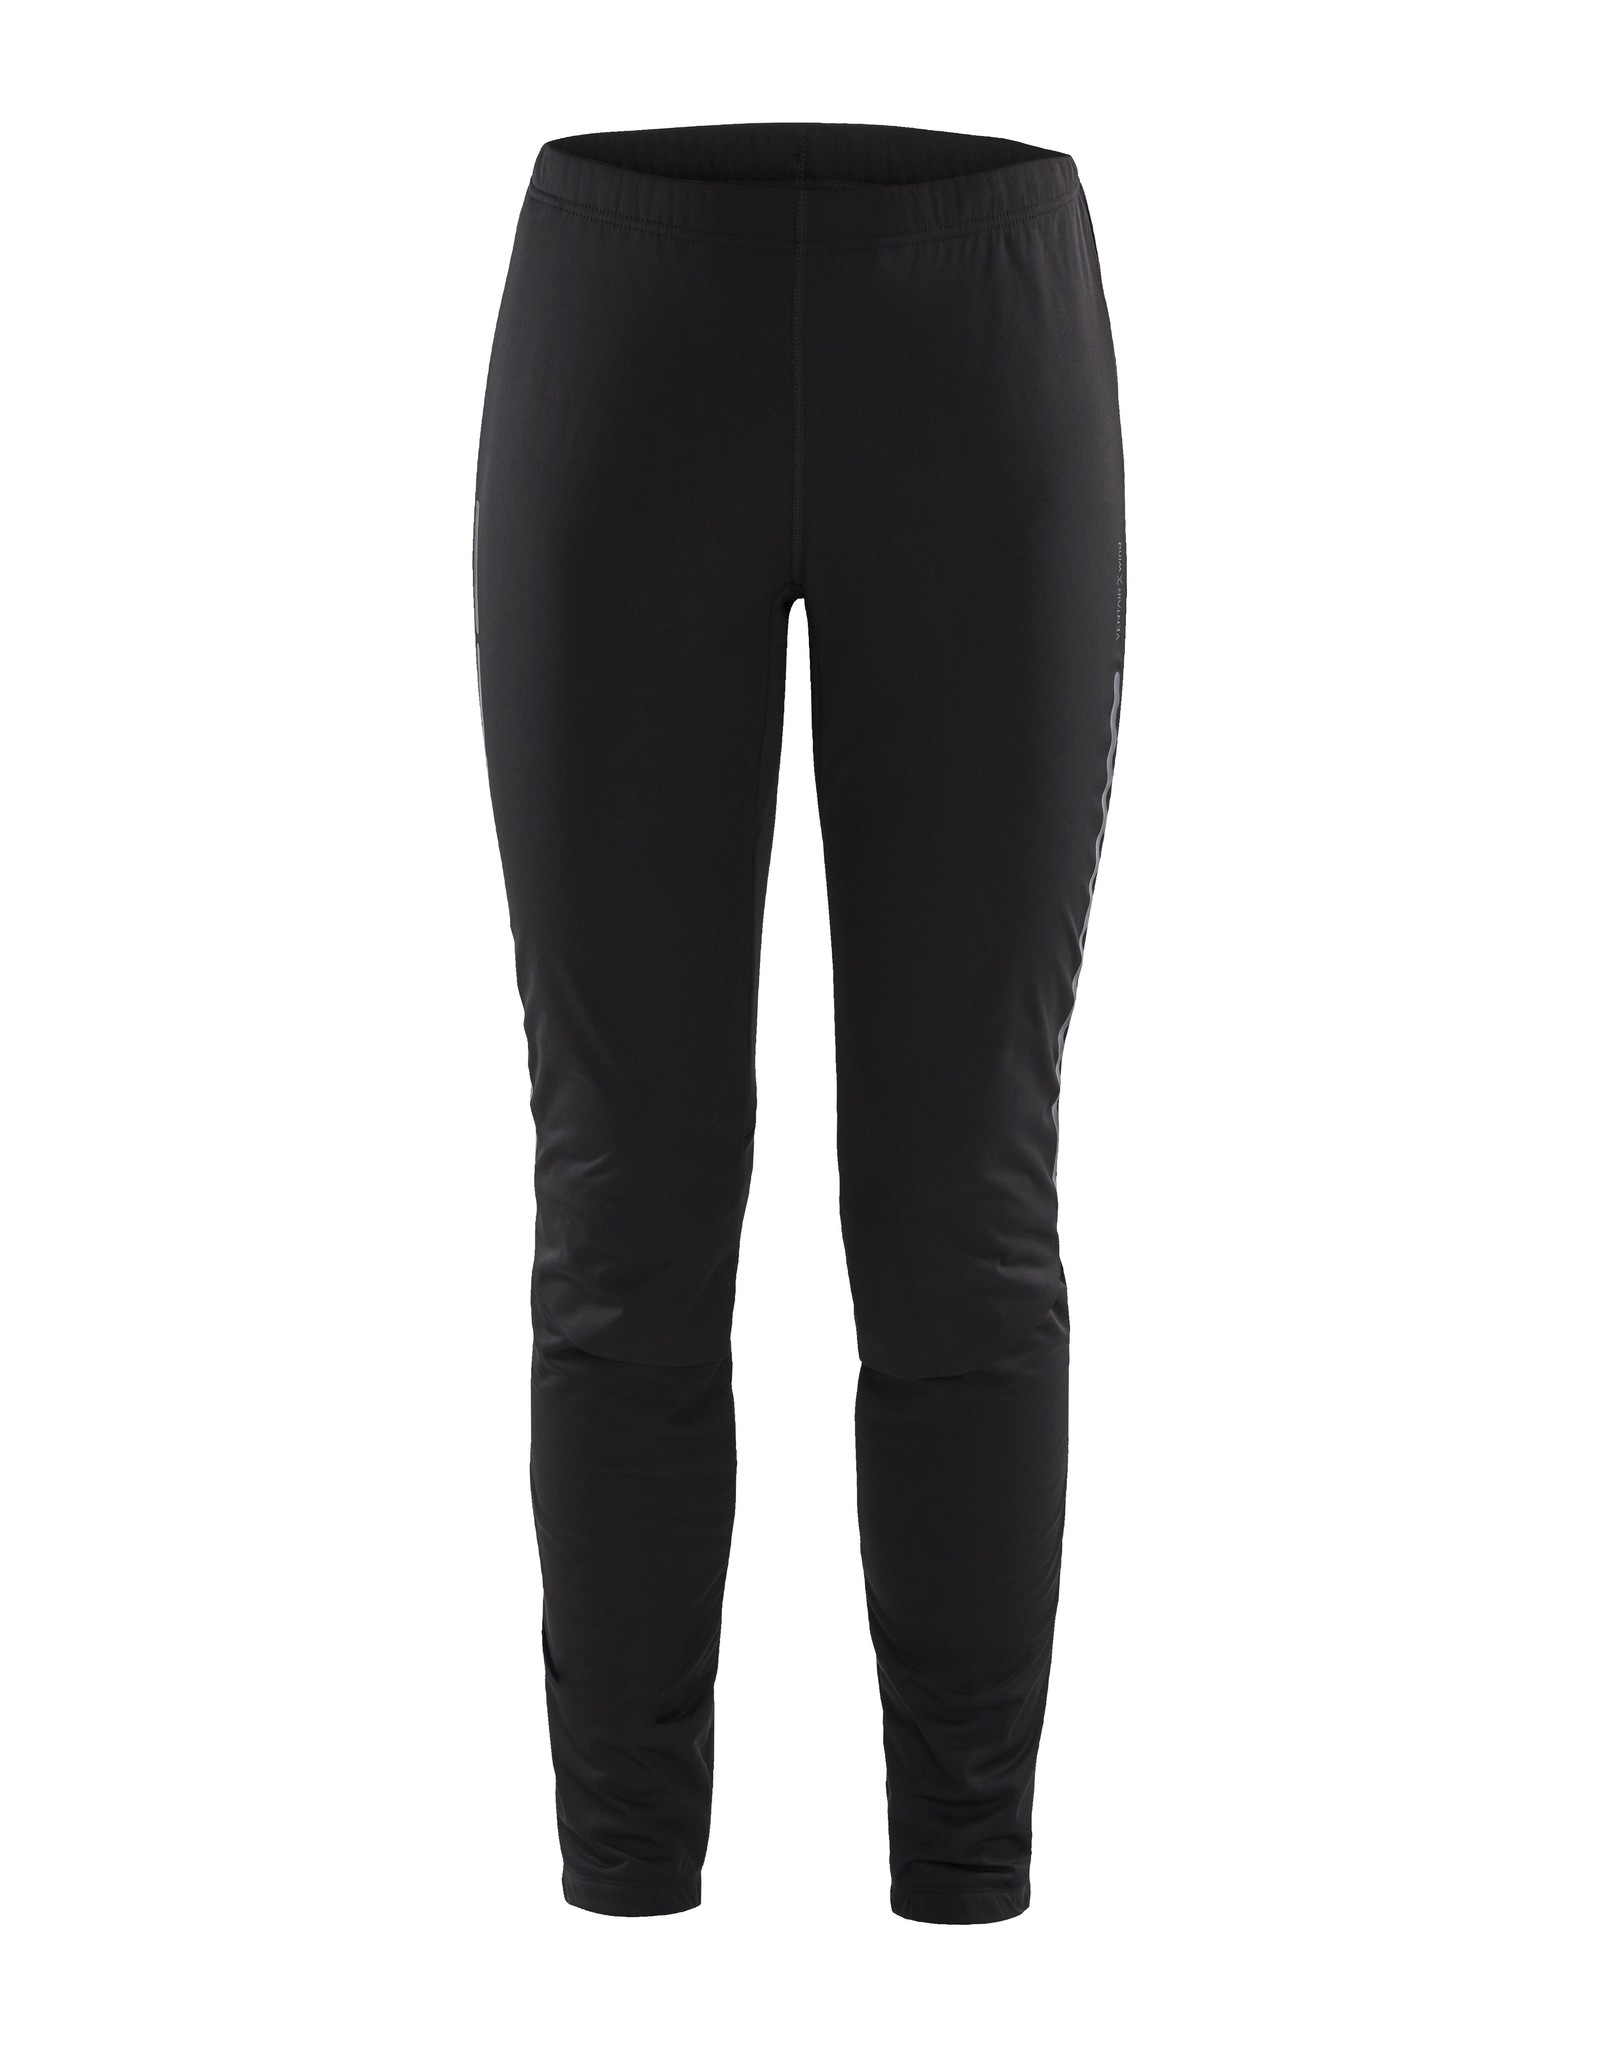 Craft Women's Storm Balance Tights